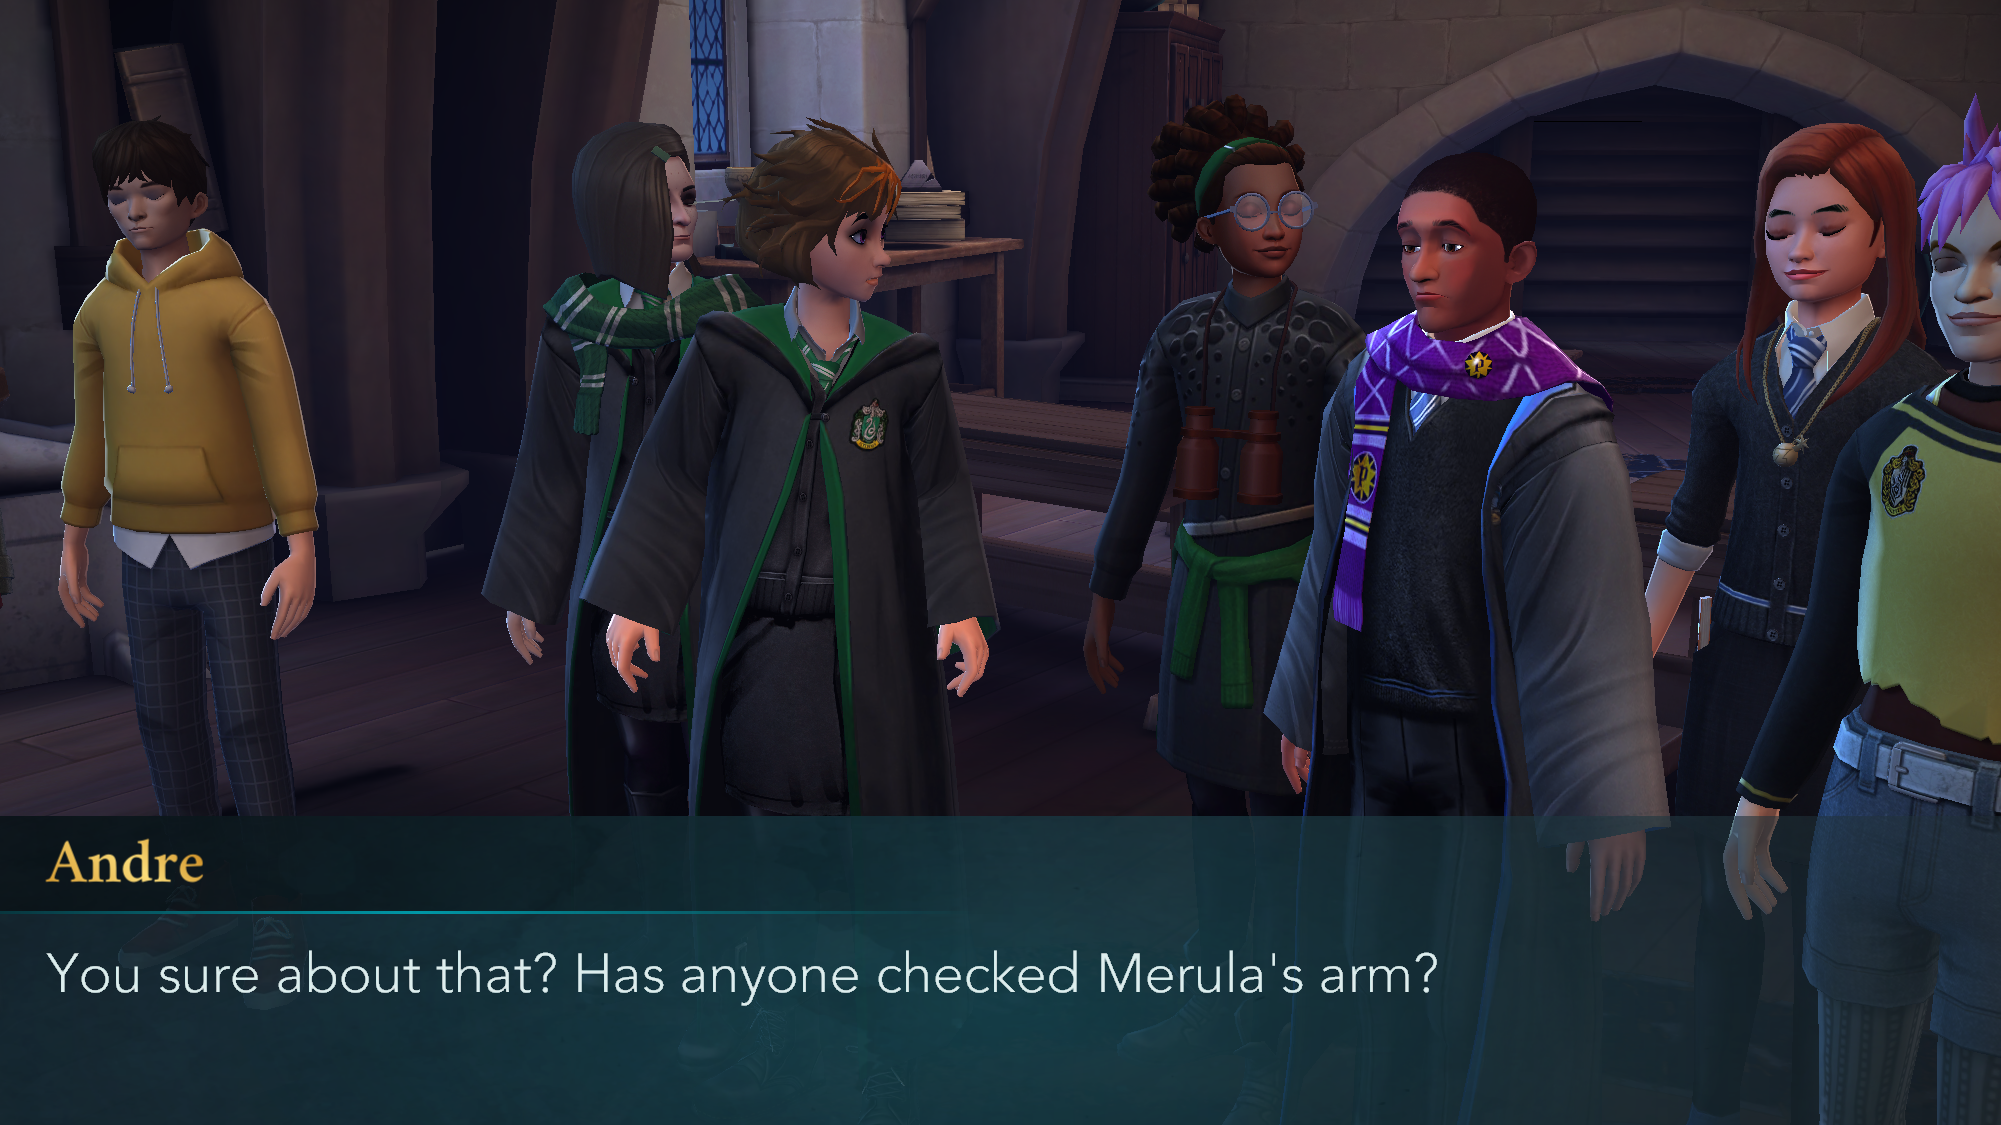 Pin By Camilla Tilly On Harry Potter Hogwarts Mystery Game Hogwarts Mystery Hogwarts Mystery Games